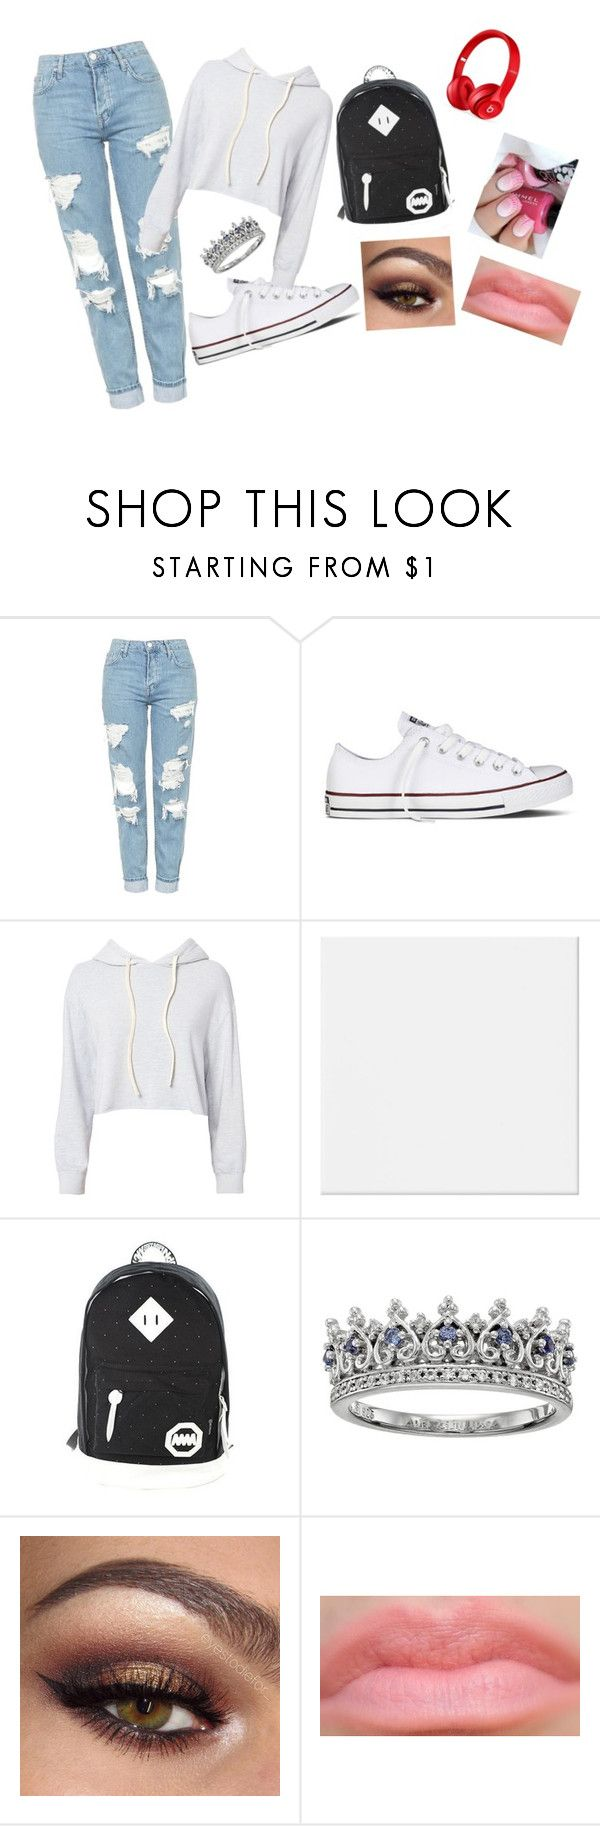 """""""Easy school outfit"""" by gaminggirls120 on Polyvore featuring Topshop, Converse, Monrow, CO, Beats by Dr. Dre and white"""